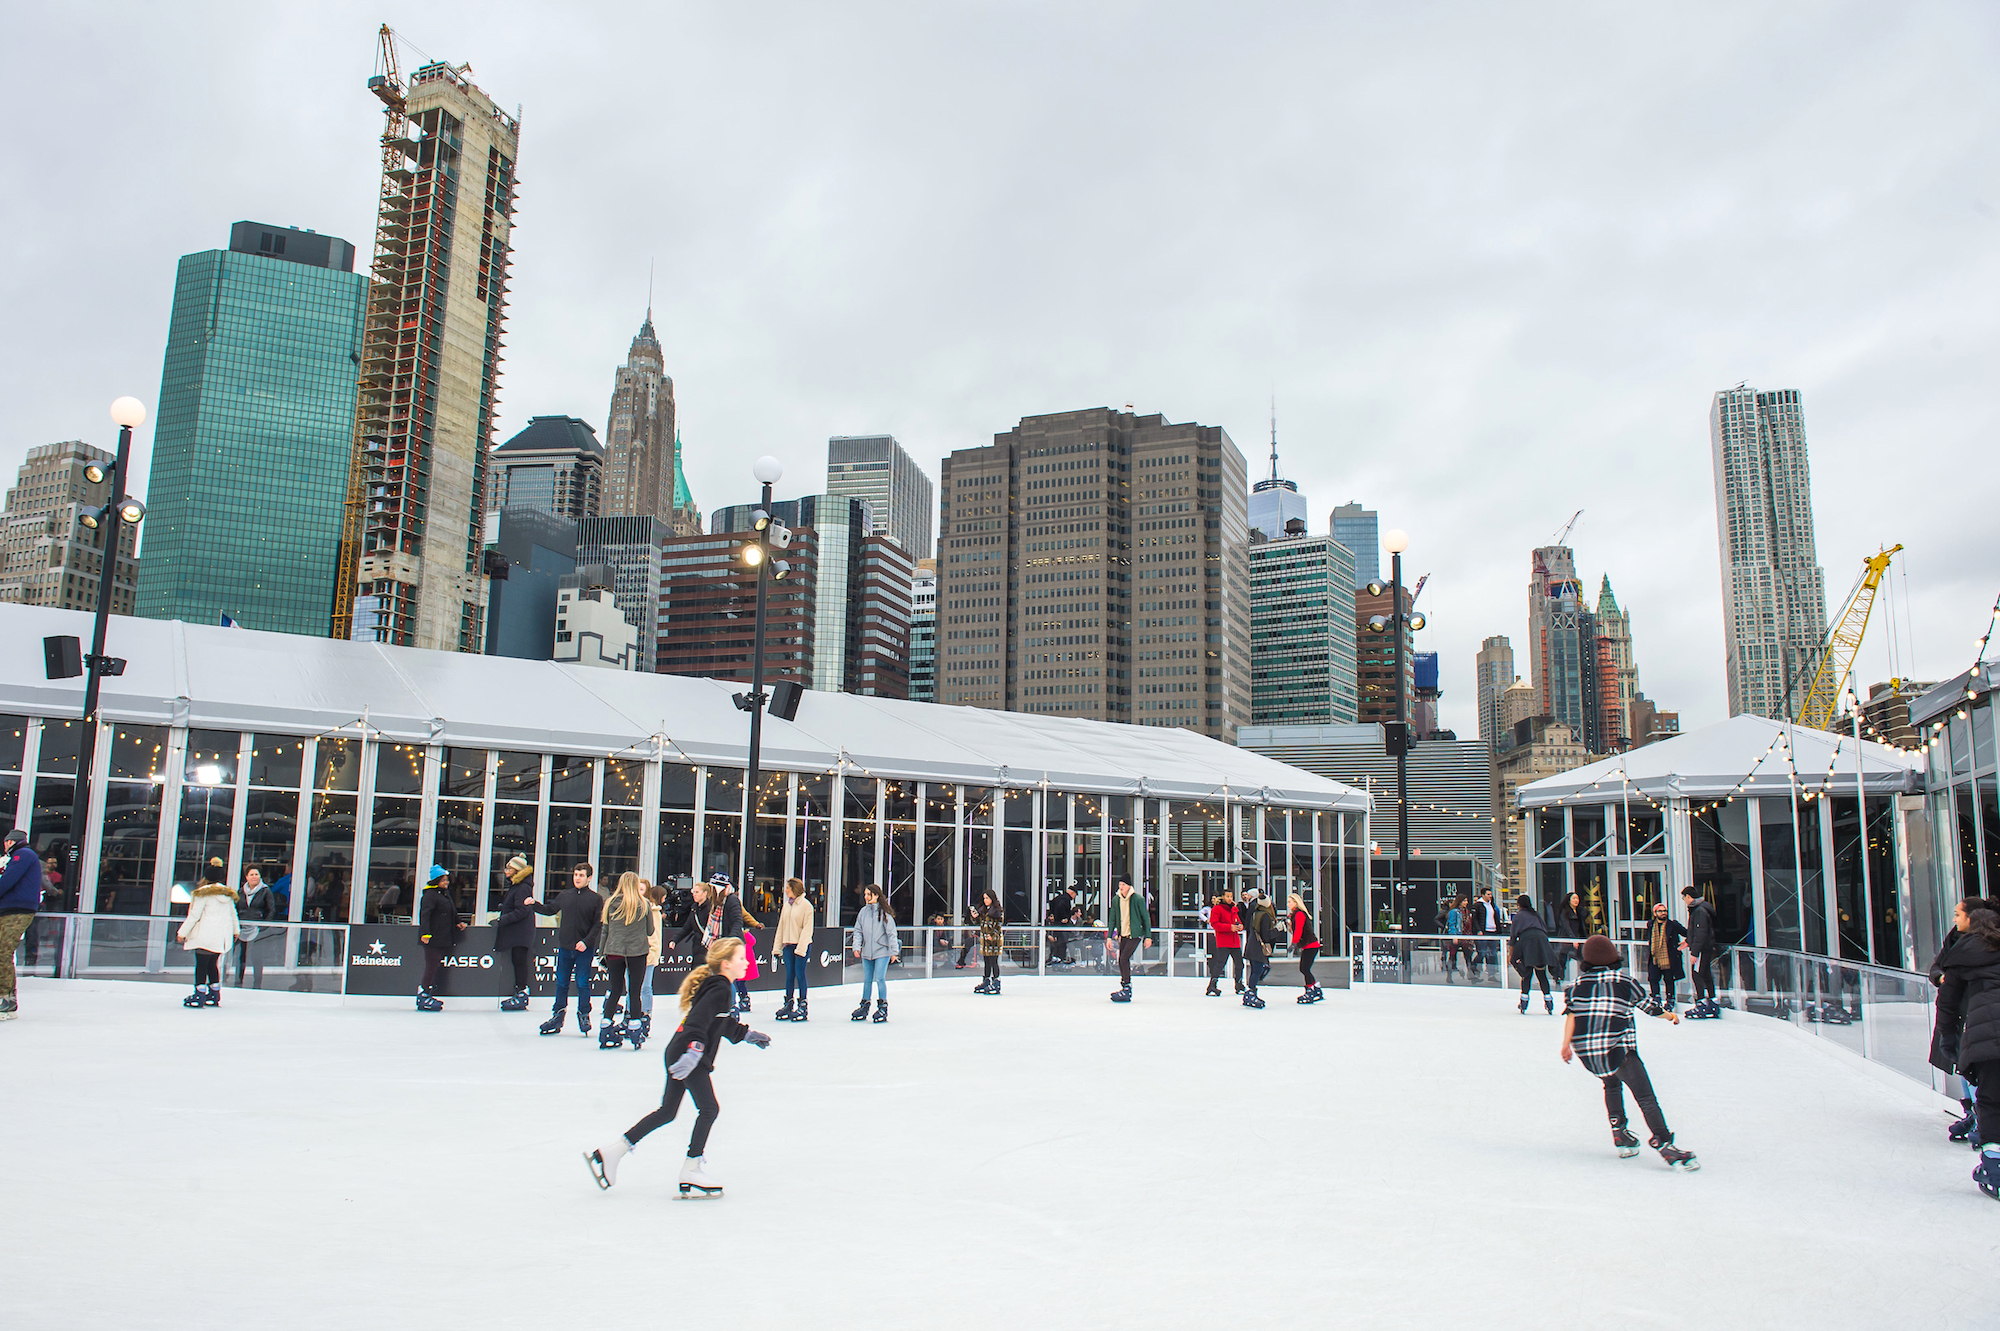 Hours For Southside Seaport Christmas Ice Rink 2020 NYC's only open air rooftop ice skating rink opens this week | 6sqft